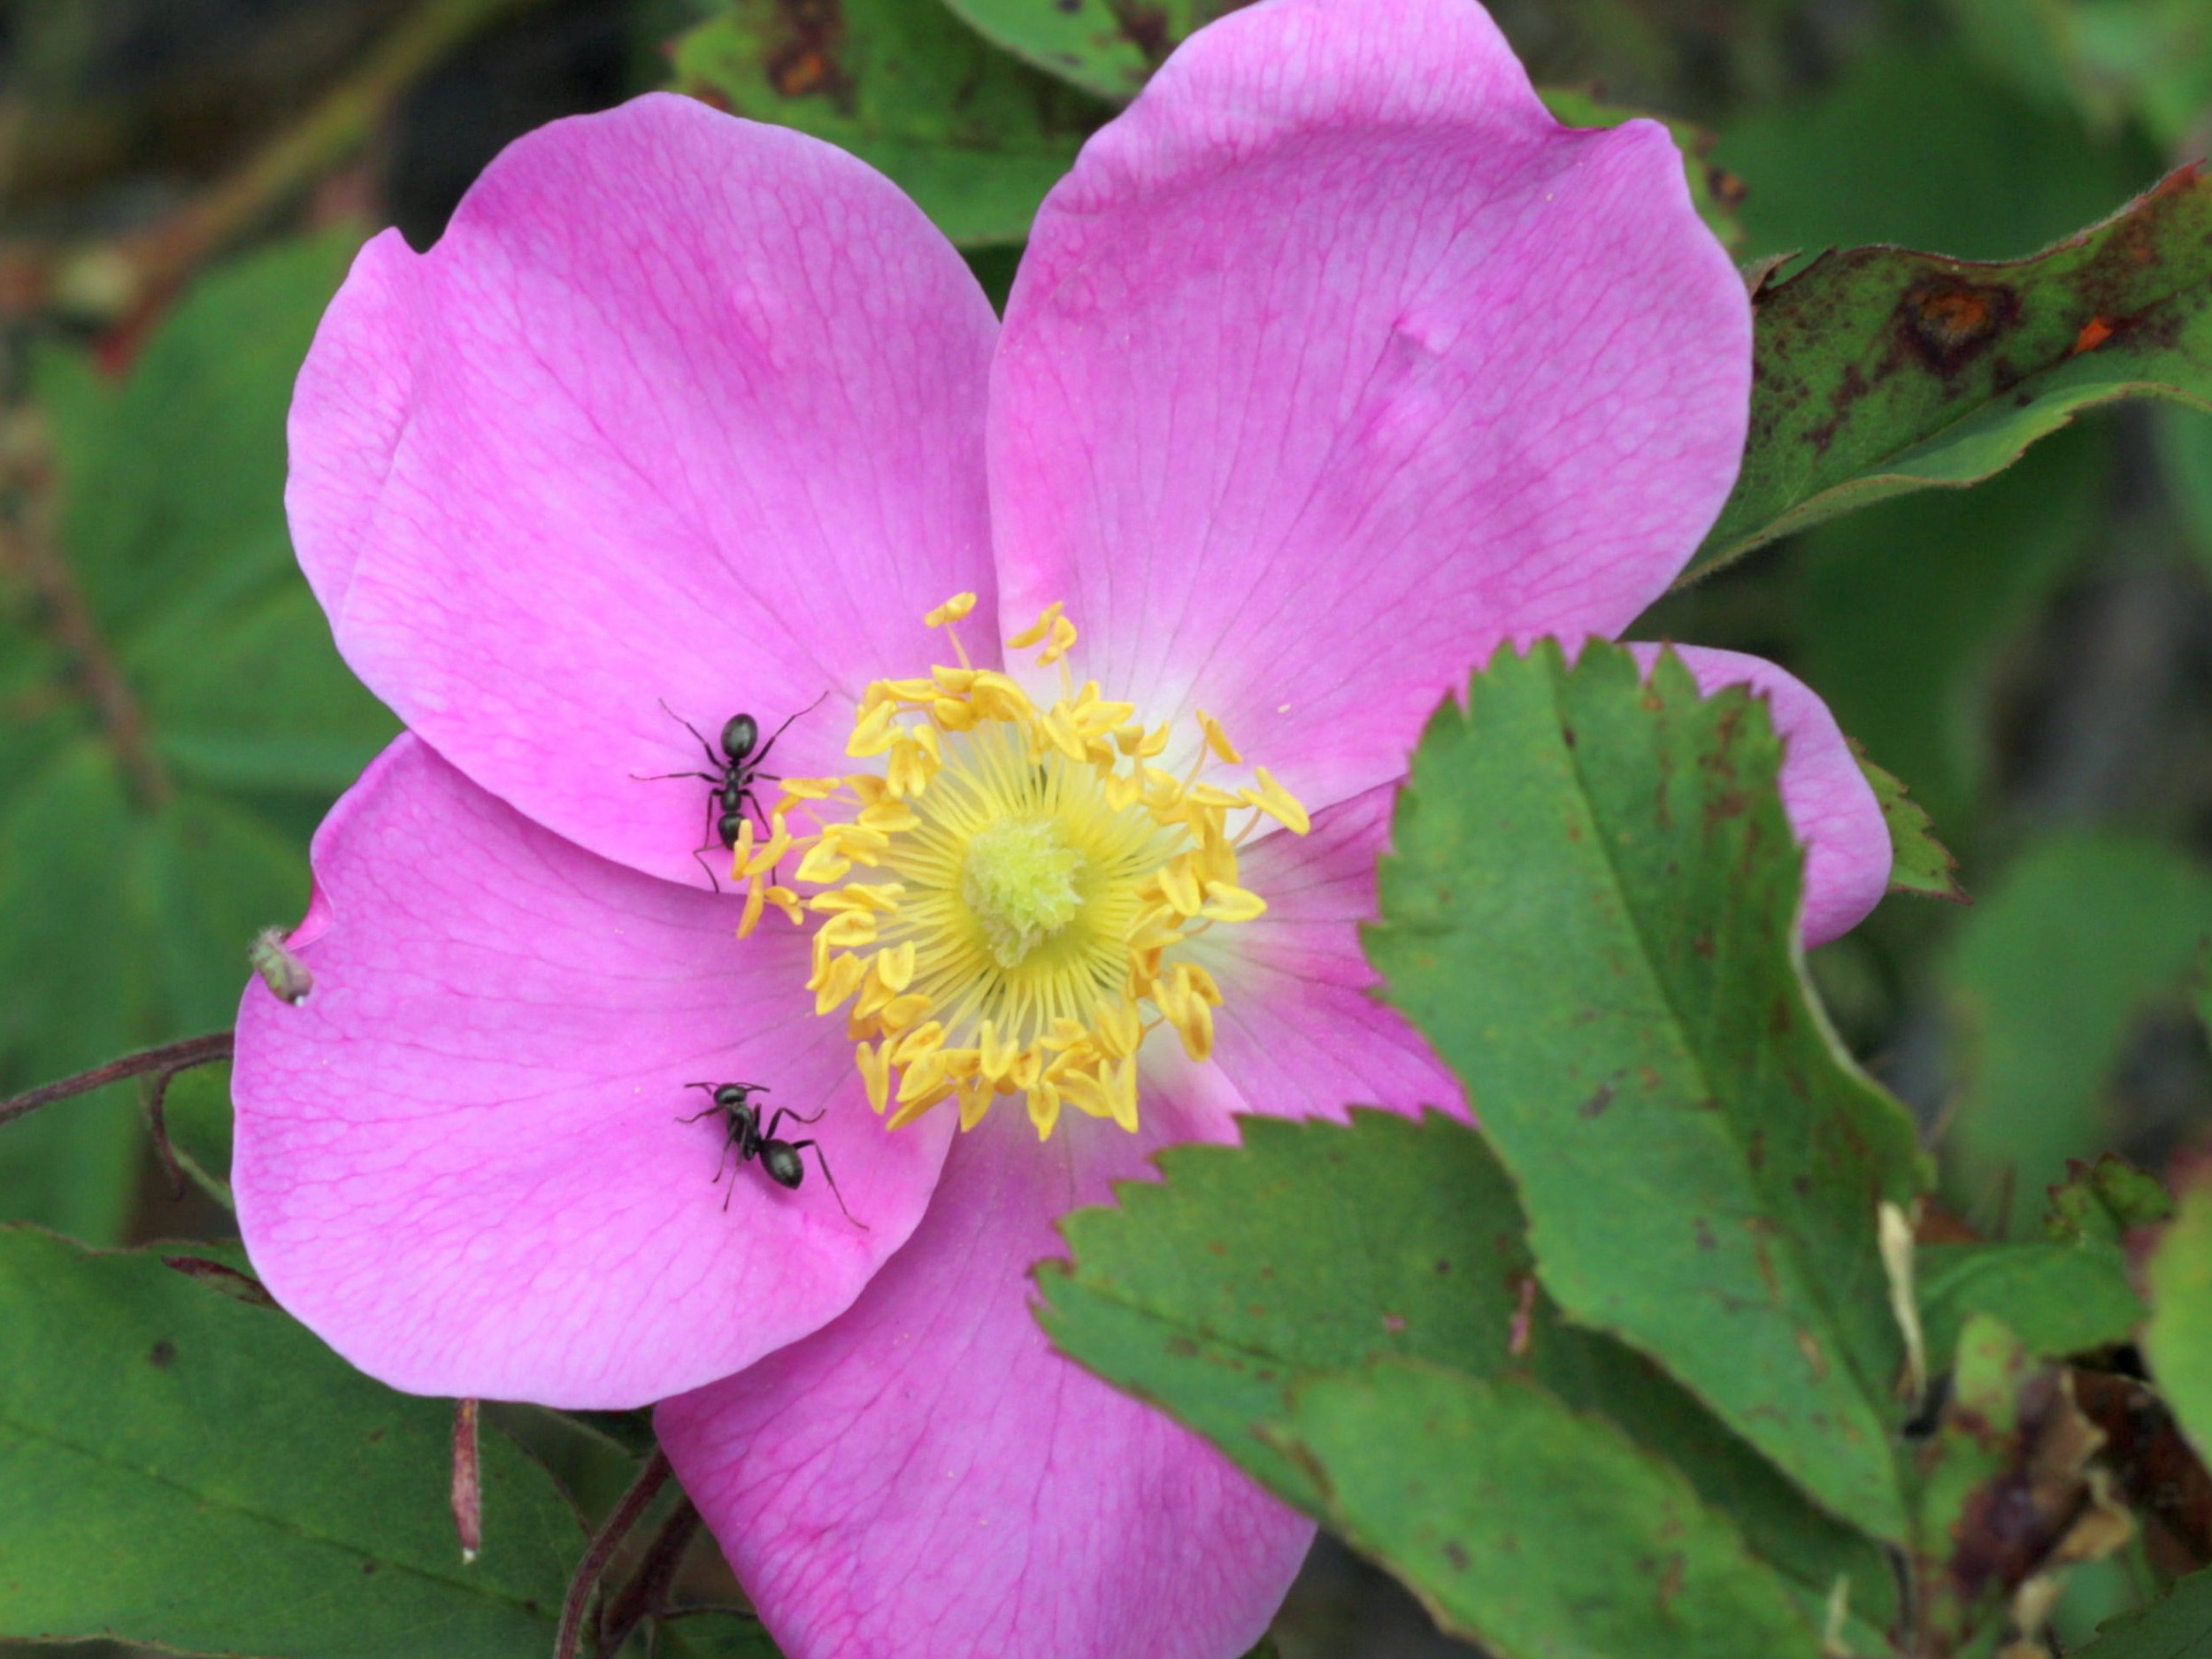 Flower with Ants